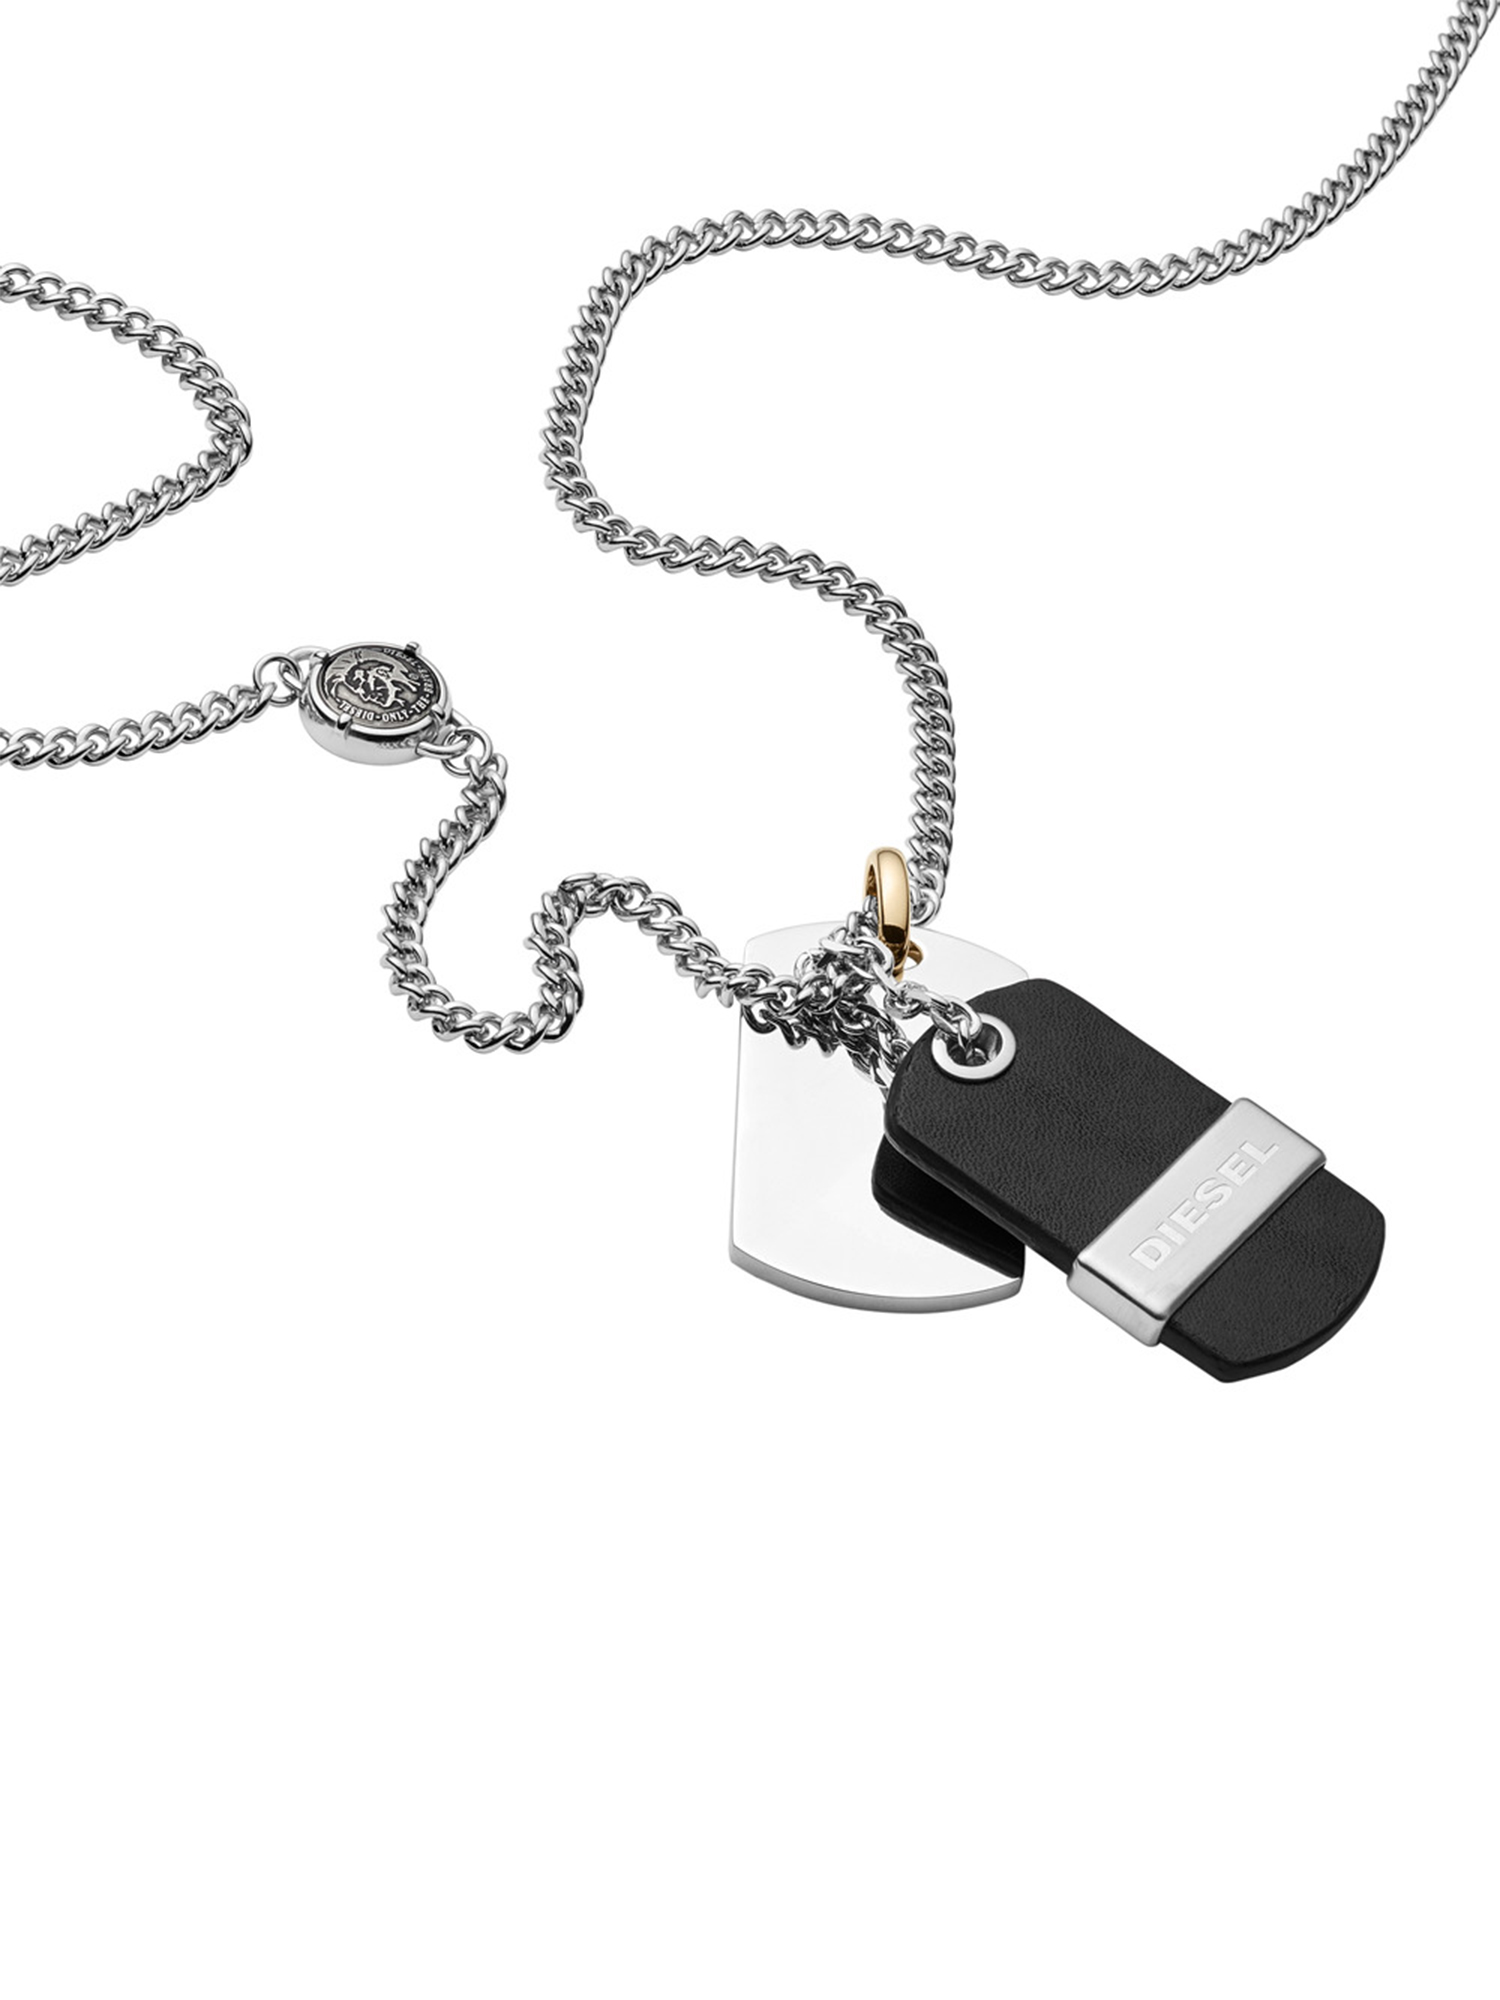 Diesel - NECKLACE DX1084,  - Colliers - Image 2